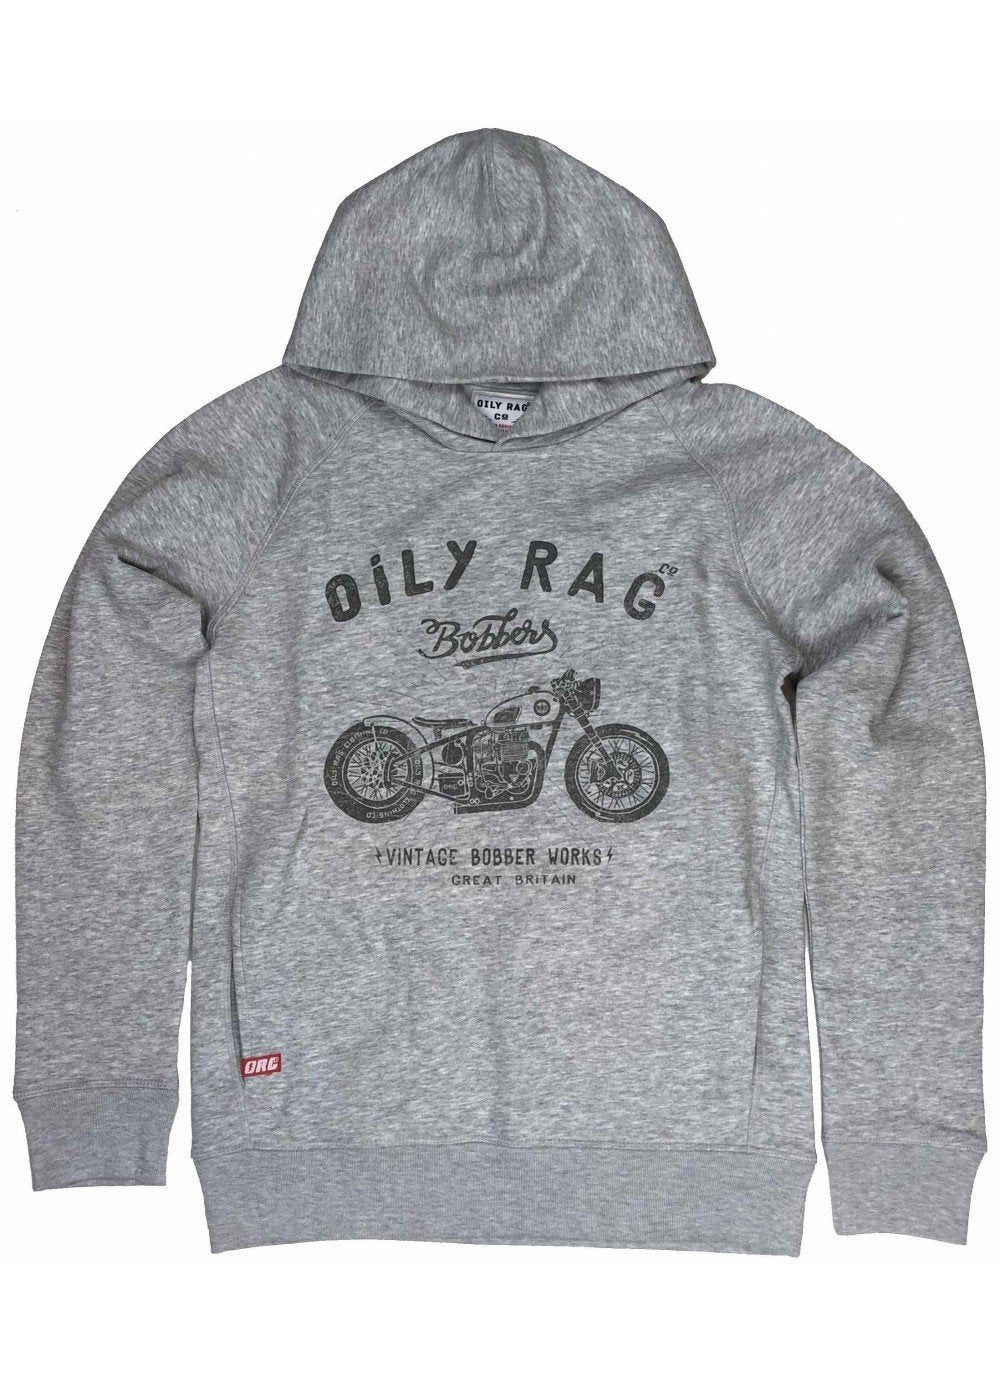 Oily Rag Clothing - Oily Rag Clothing Unisex Bobber Works Black Label Hoodie - Hoodies | Sweatshirts | Wind Stoppers - Salt Flats Clothing